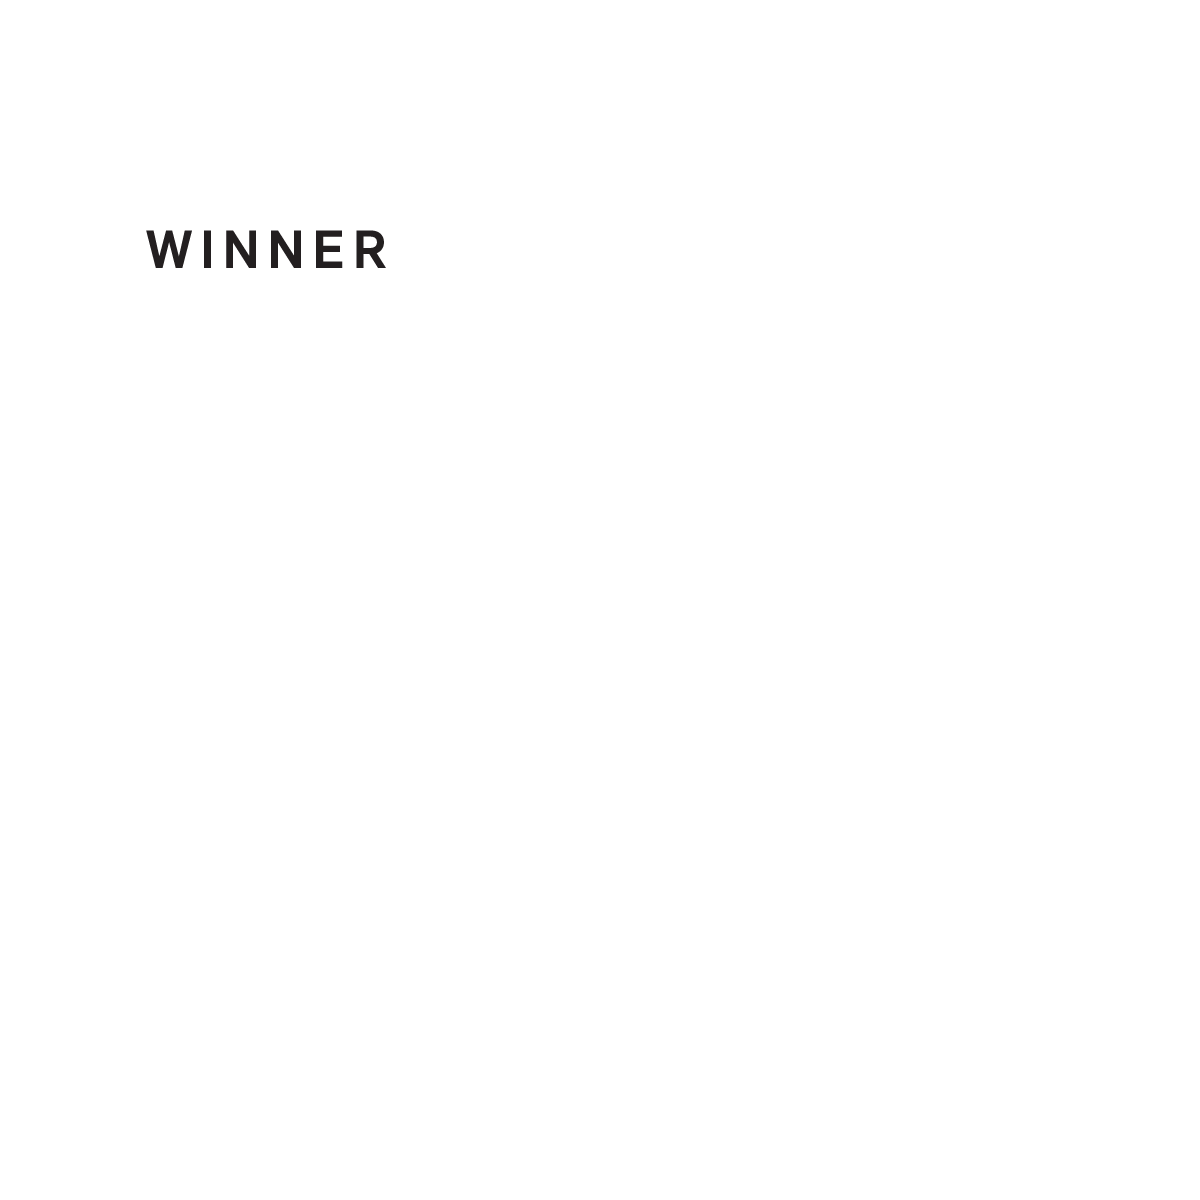 Travel + Leisure World's Best Award